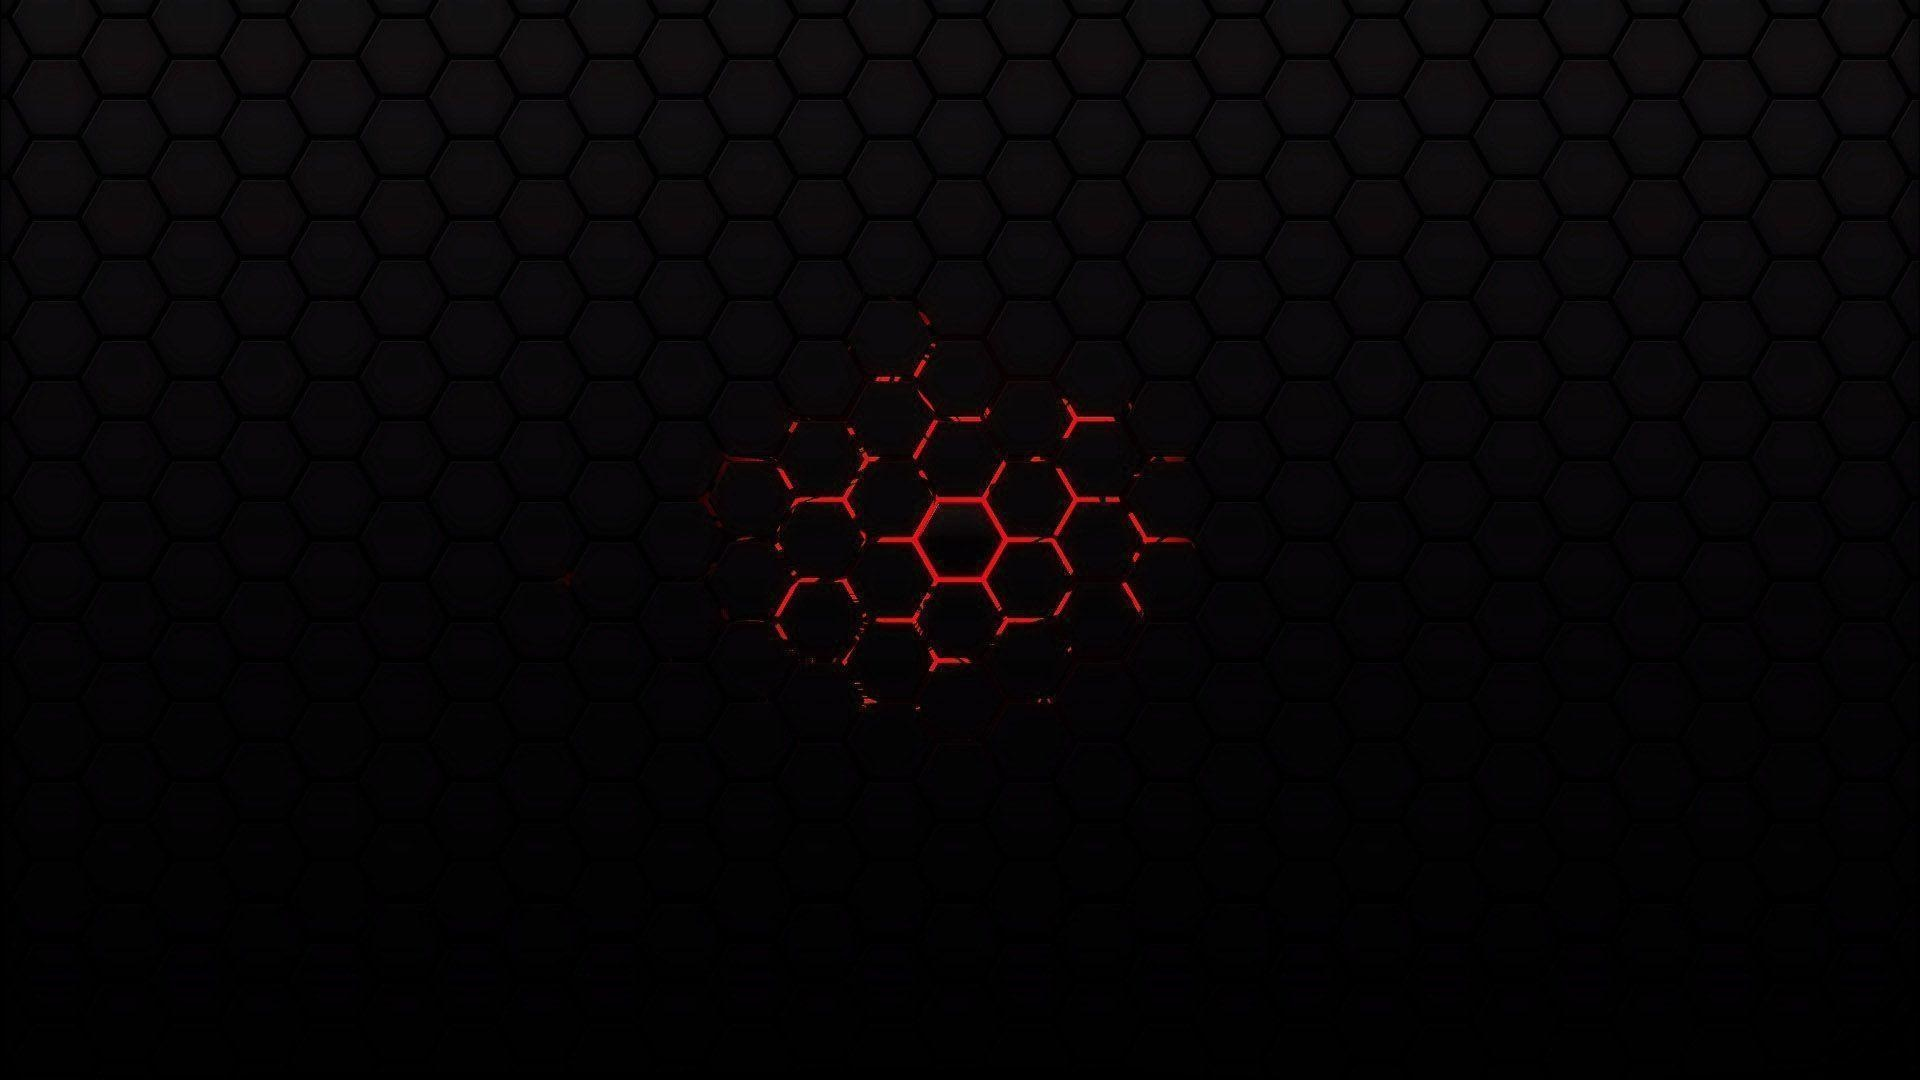 Black and red hexes wallpaper